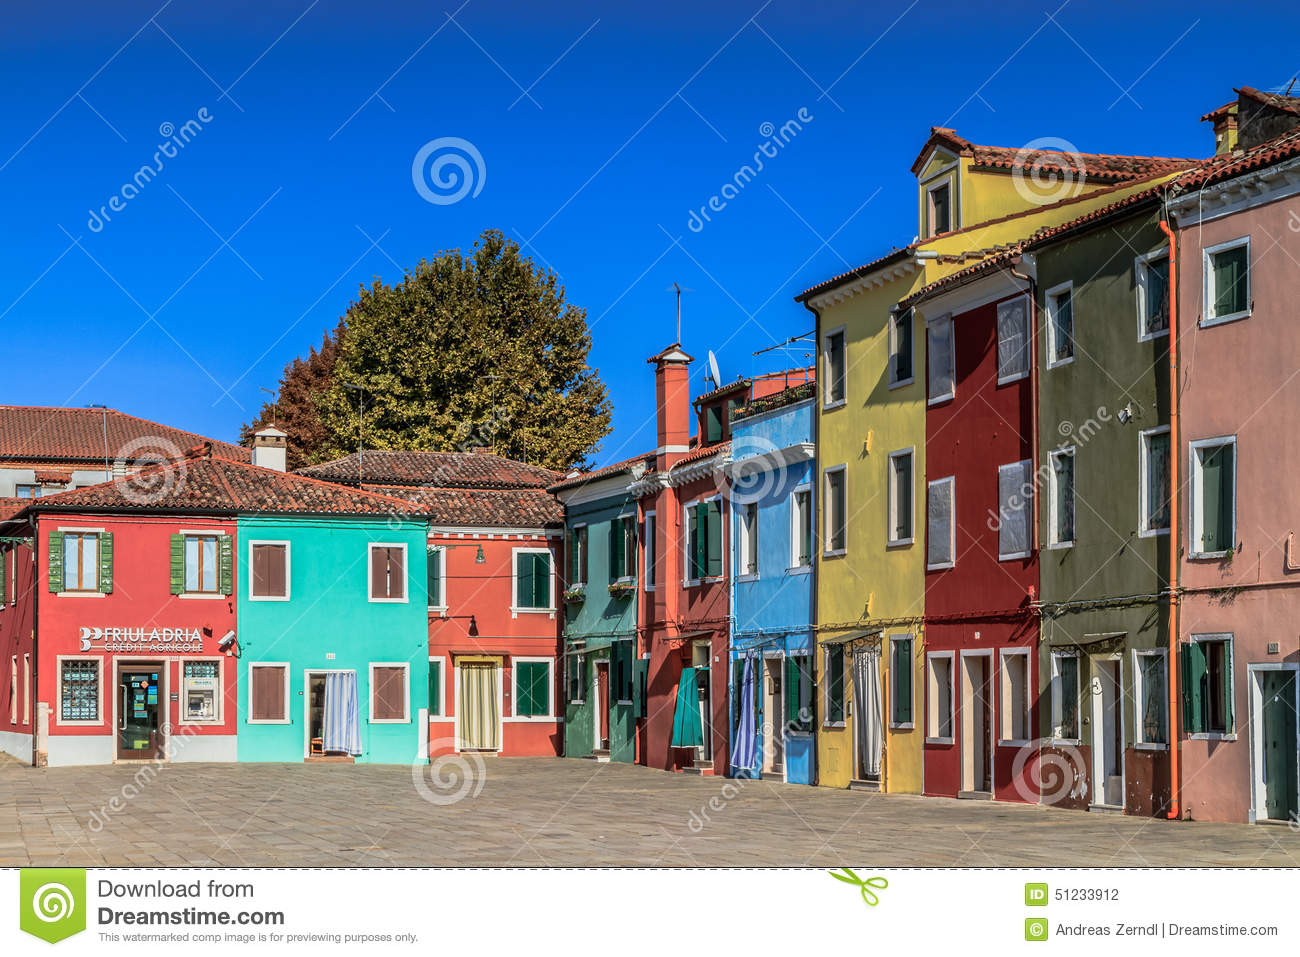 Colorful burano italy burano tourism - Colorful Houses Of Burano Editorial Photography